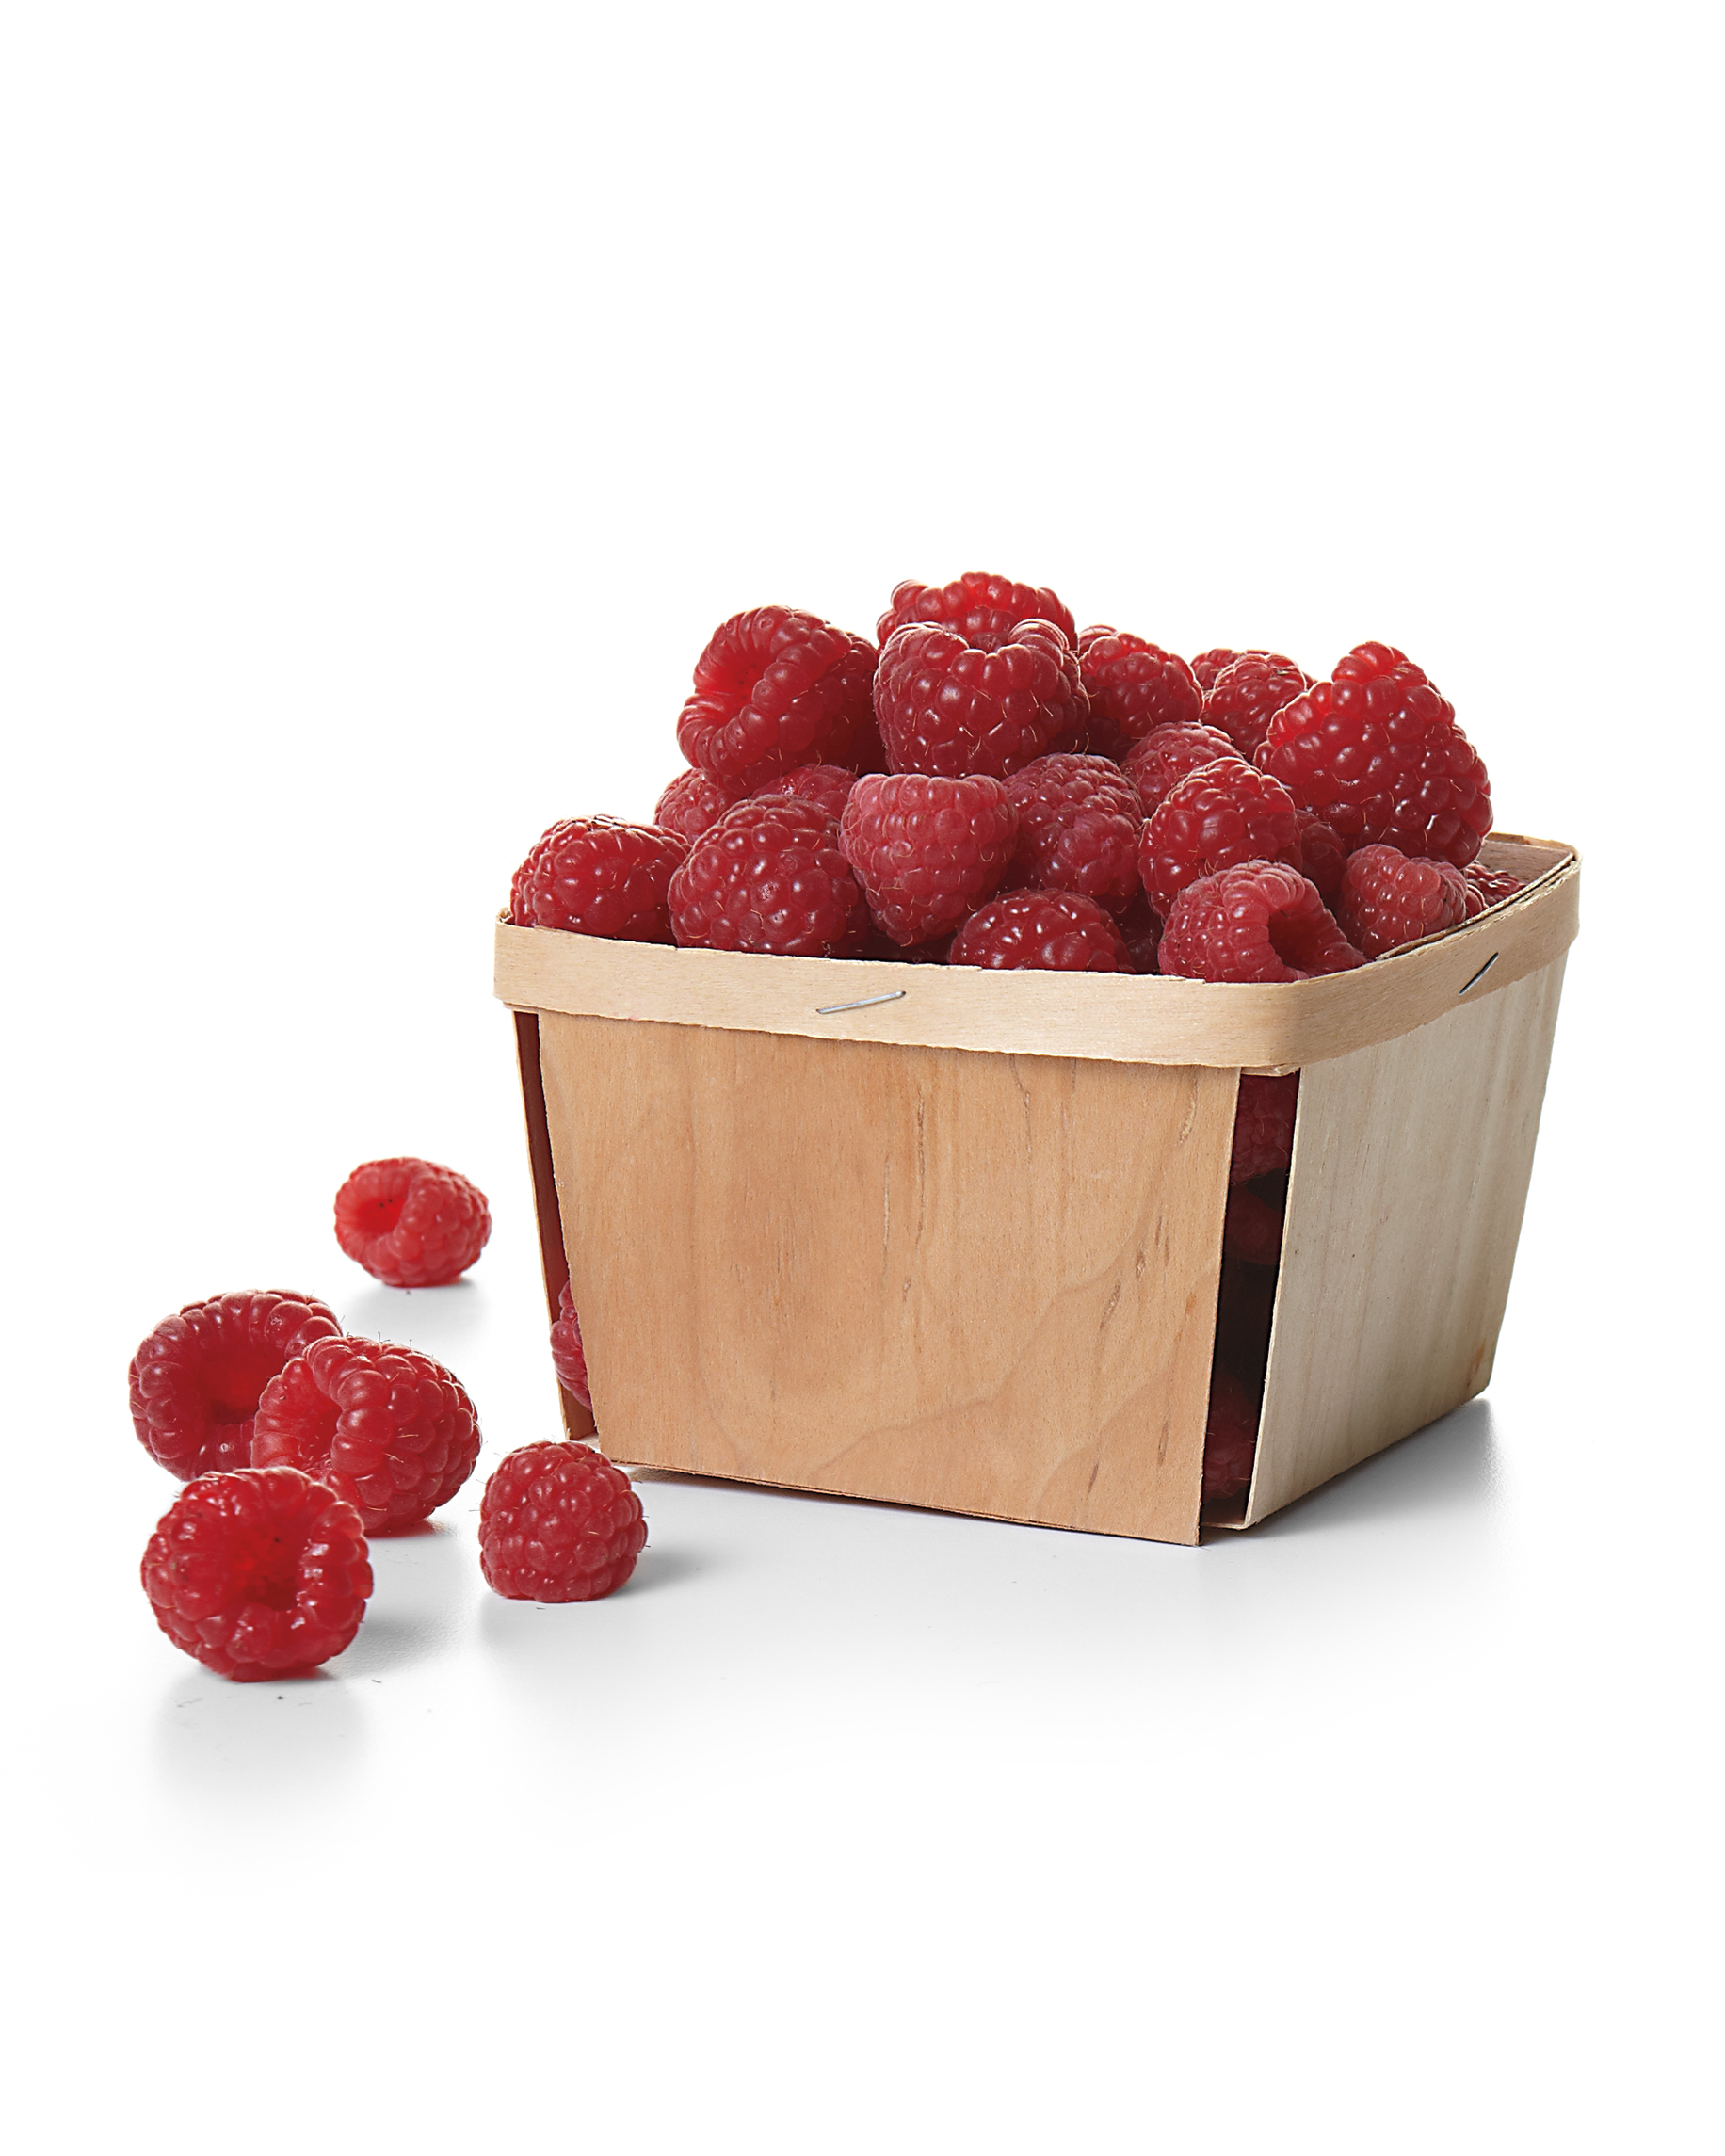 raspberries-025-mwd109728.jpg